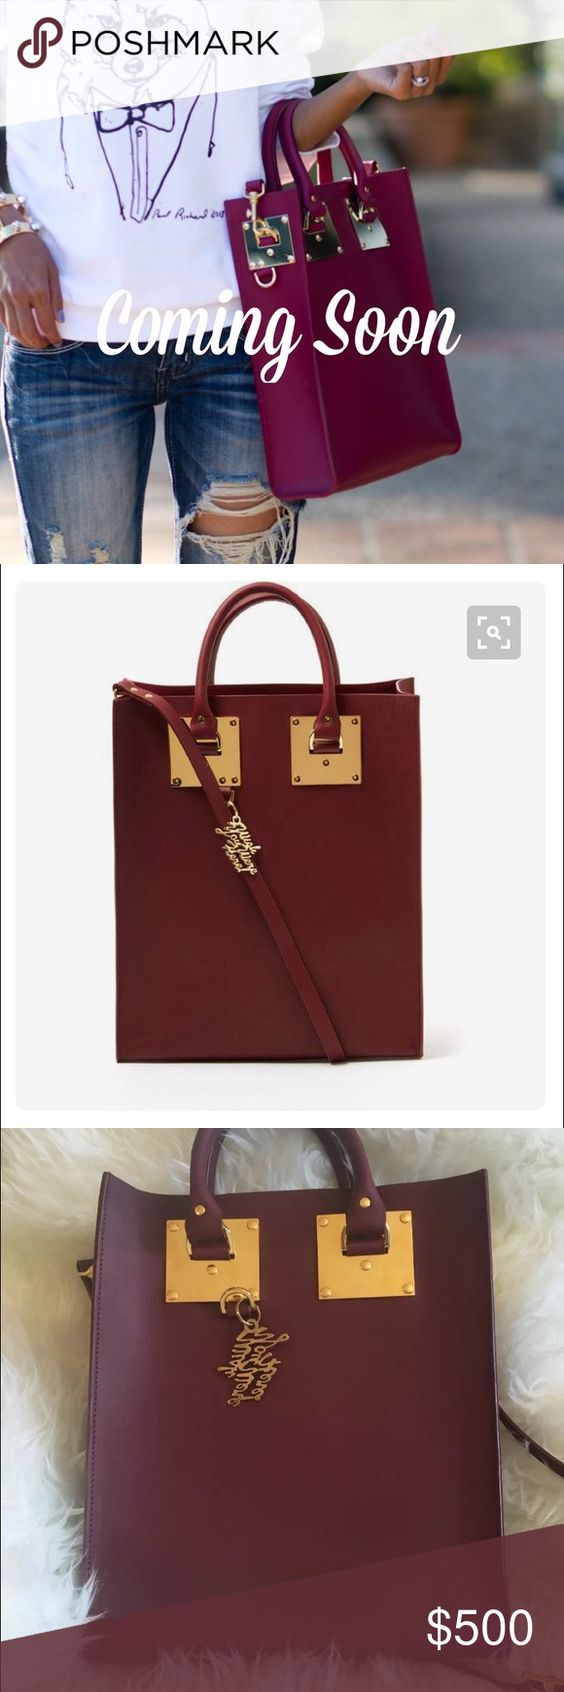 """Auth Sophie Hulme Albino Mini Tote Burgundy Plum TAKING OFFERS ON THIS BEAUTIFUL Authentic Sophie Hulme Albion Mini tote in burgundy plum saddle leather will be the highlight of your new-season outfits. Gold plated brass hardware. Signature style returns with a pop of colour and """"wish you were here"""" charm. Attach optional strap to carry as cross body. It is the perfect size to fit your essentials! Made in Hungary. Internal slip pocket. Great condition! Width 26.6cm Height 32cm Depth 8cm…"""